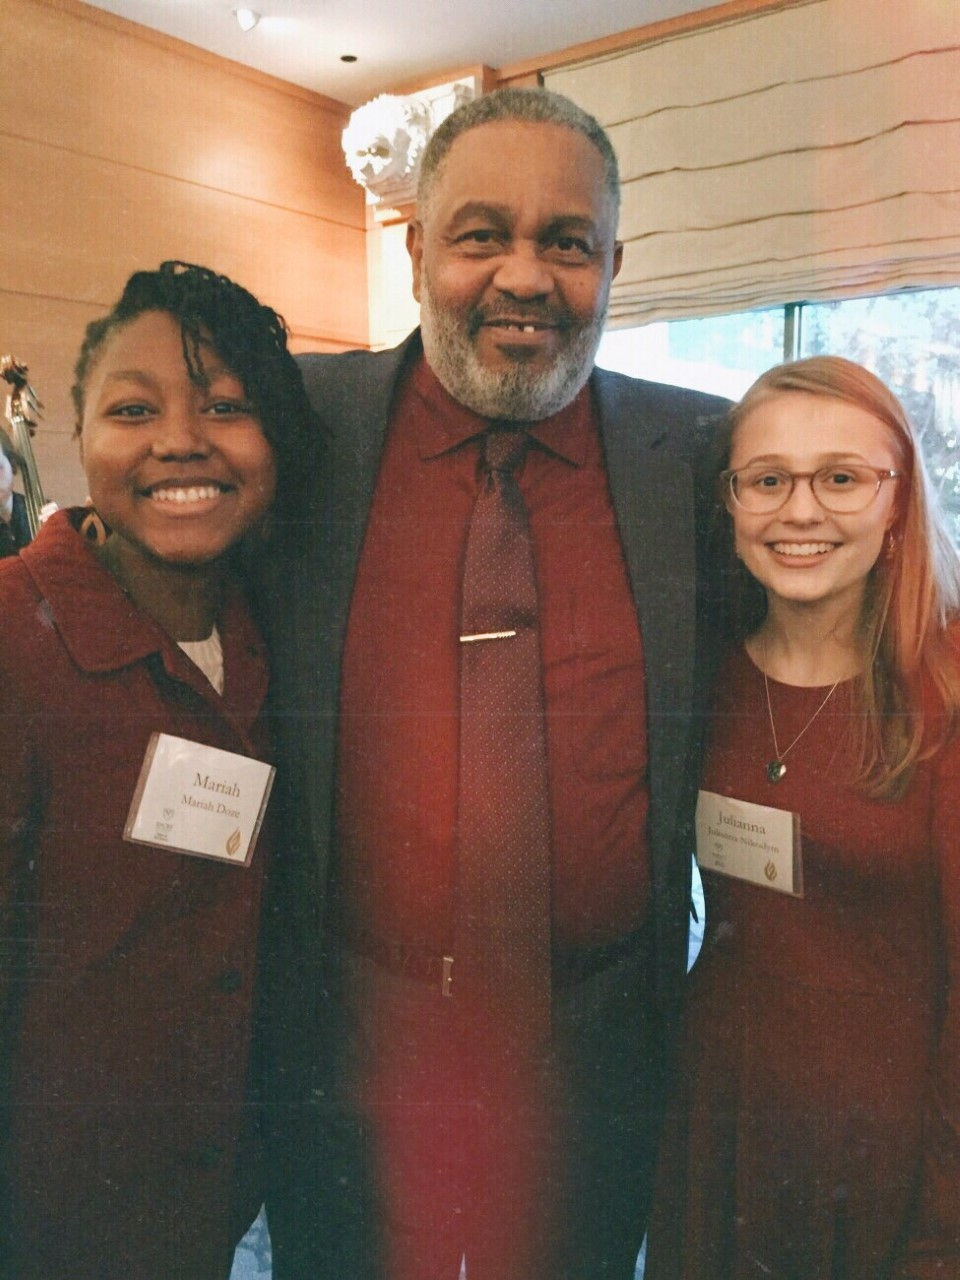 Anthony Ray Hinton - with Mariah Doze and Julianna Nikodym